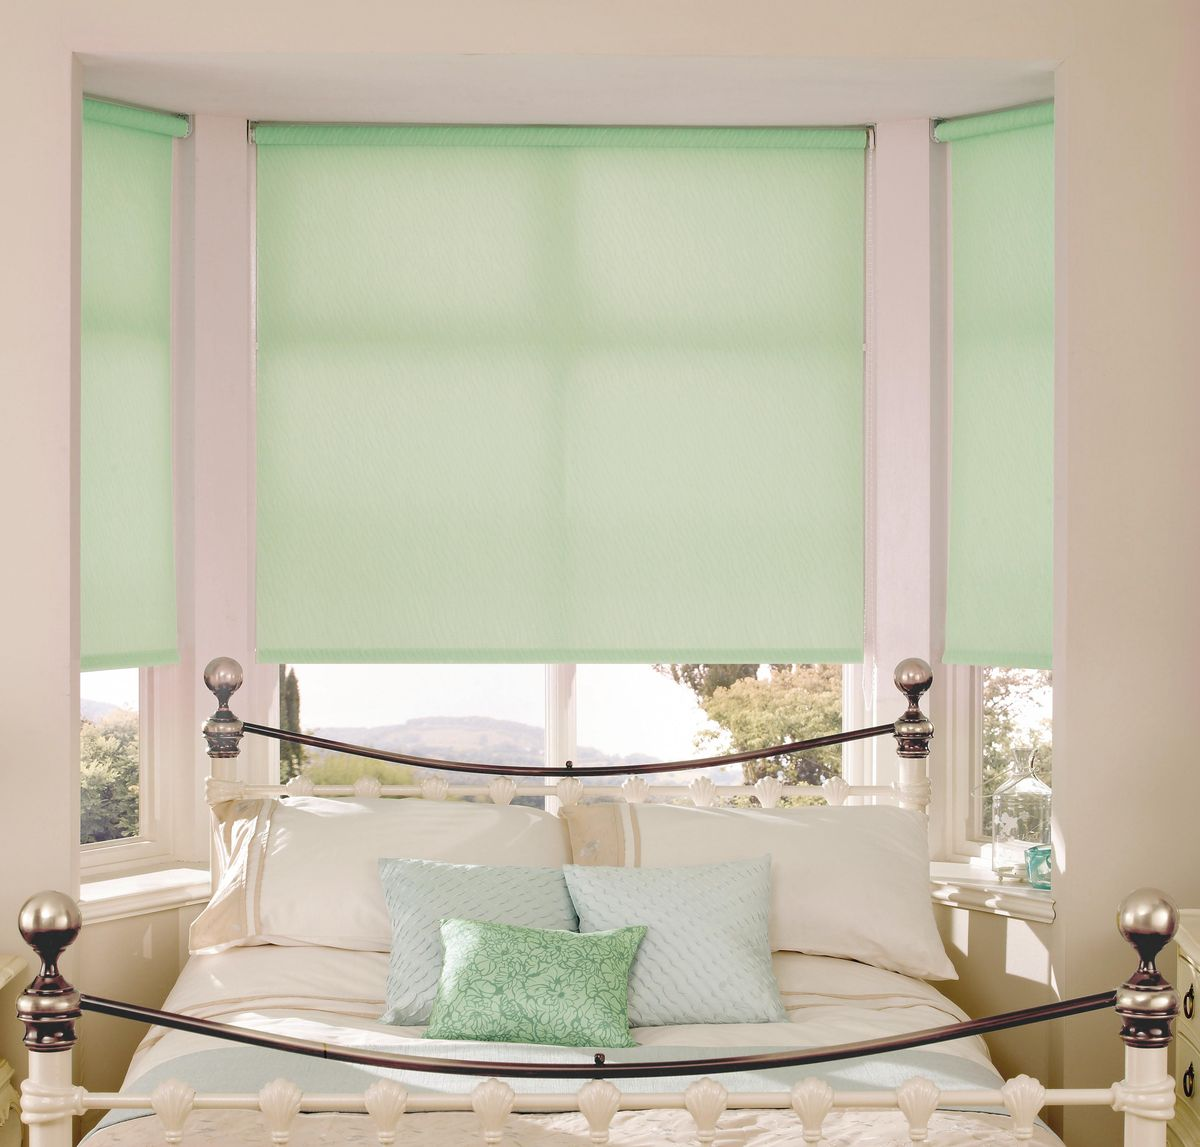 Roller Blinds: Practical and Good Looking Window Treatment. Bay window with the light emerald translucent blinds